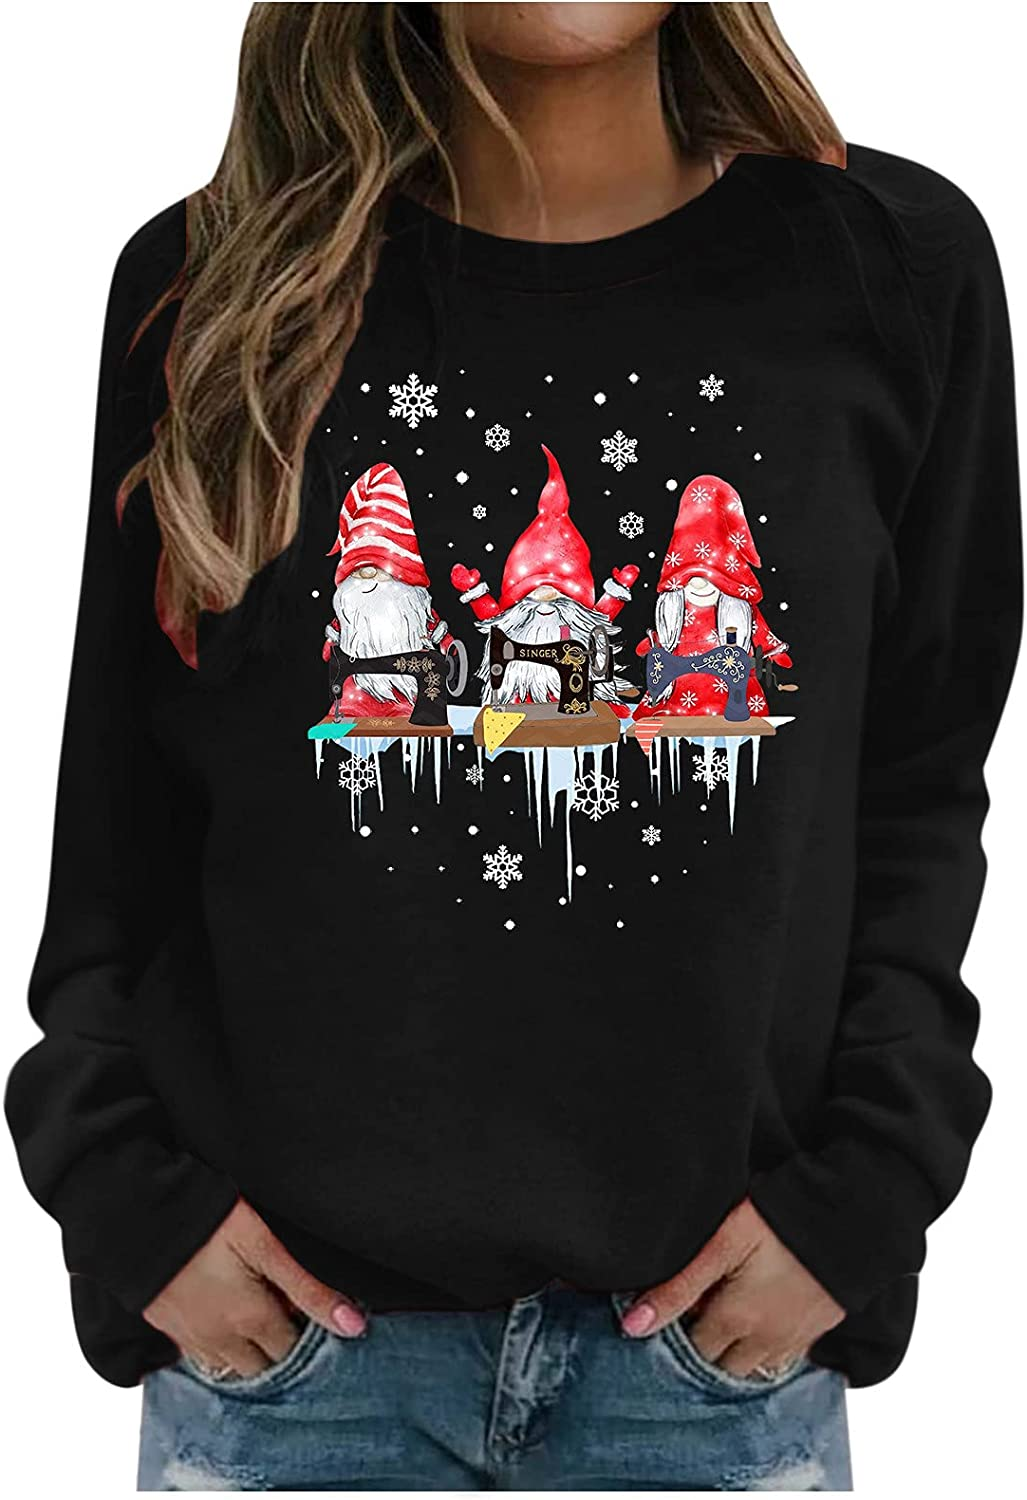 Christmas Gnome Shirts for Women Plus Size Crewneck Pullover Snowflake Graphic Tshirt Casual Holiday Fall Tops Sweatshirts